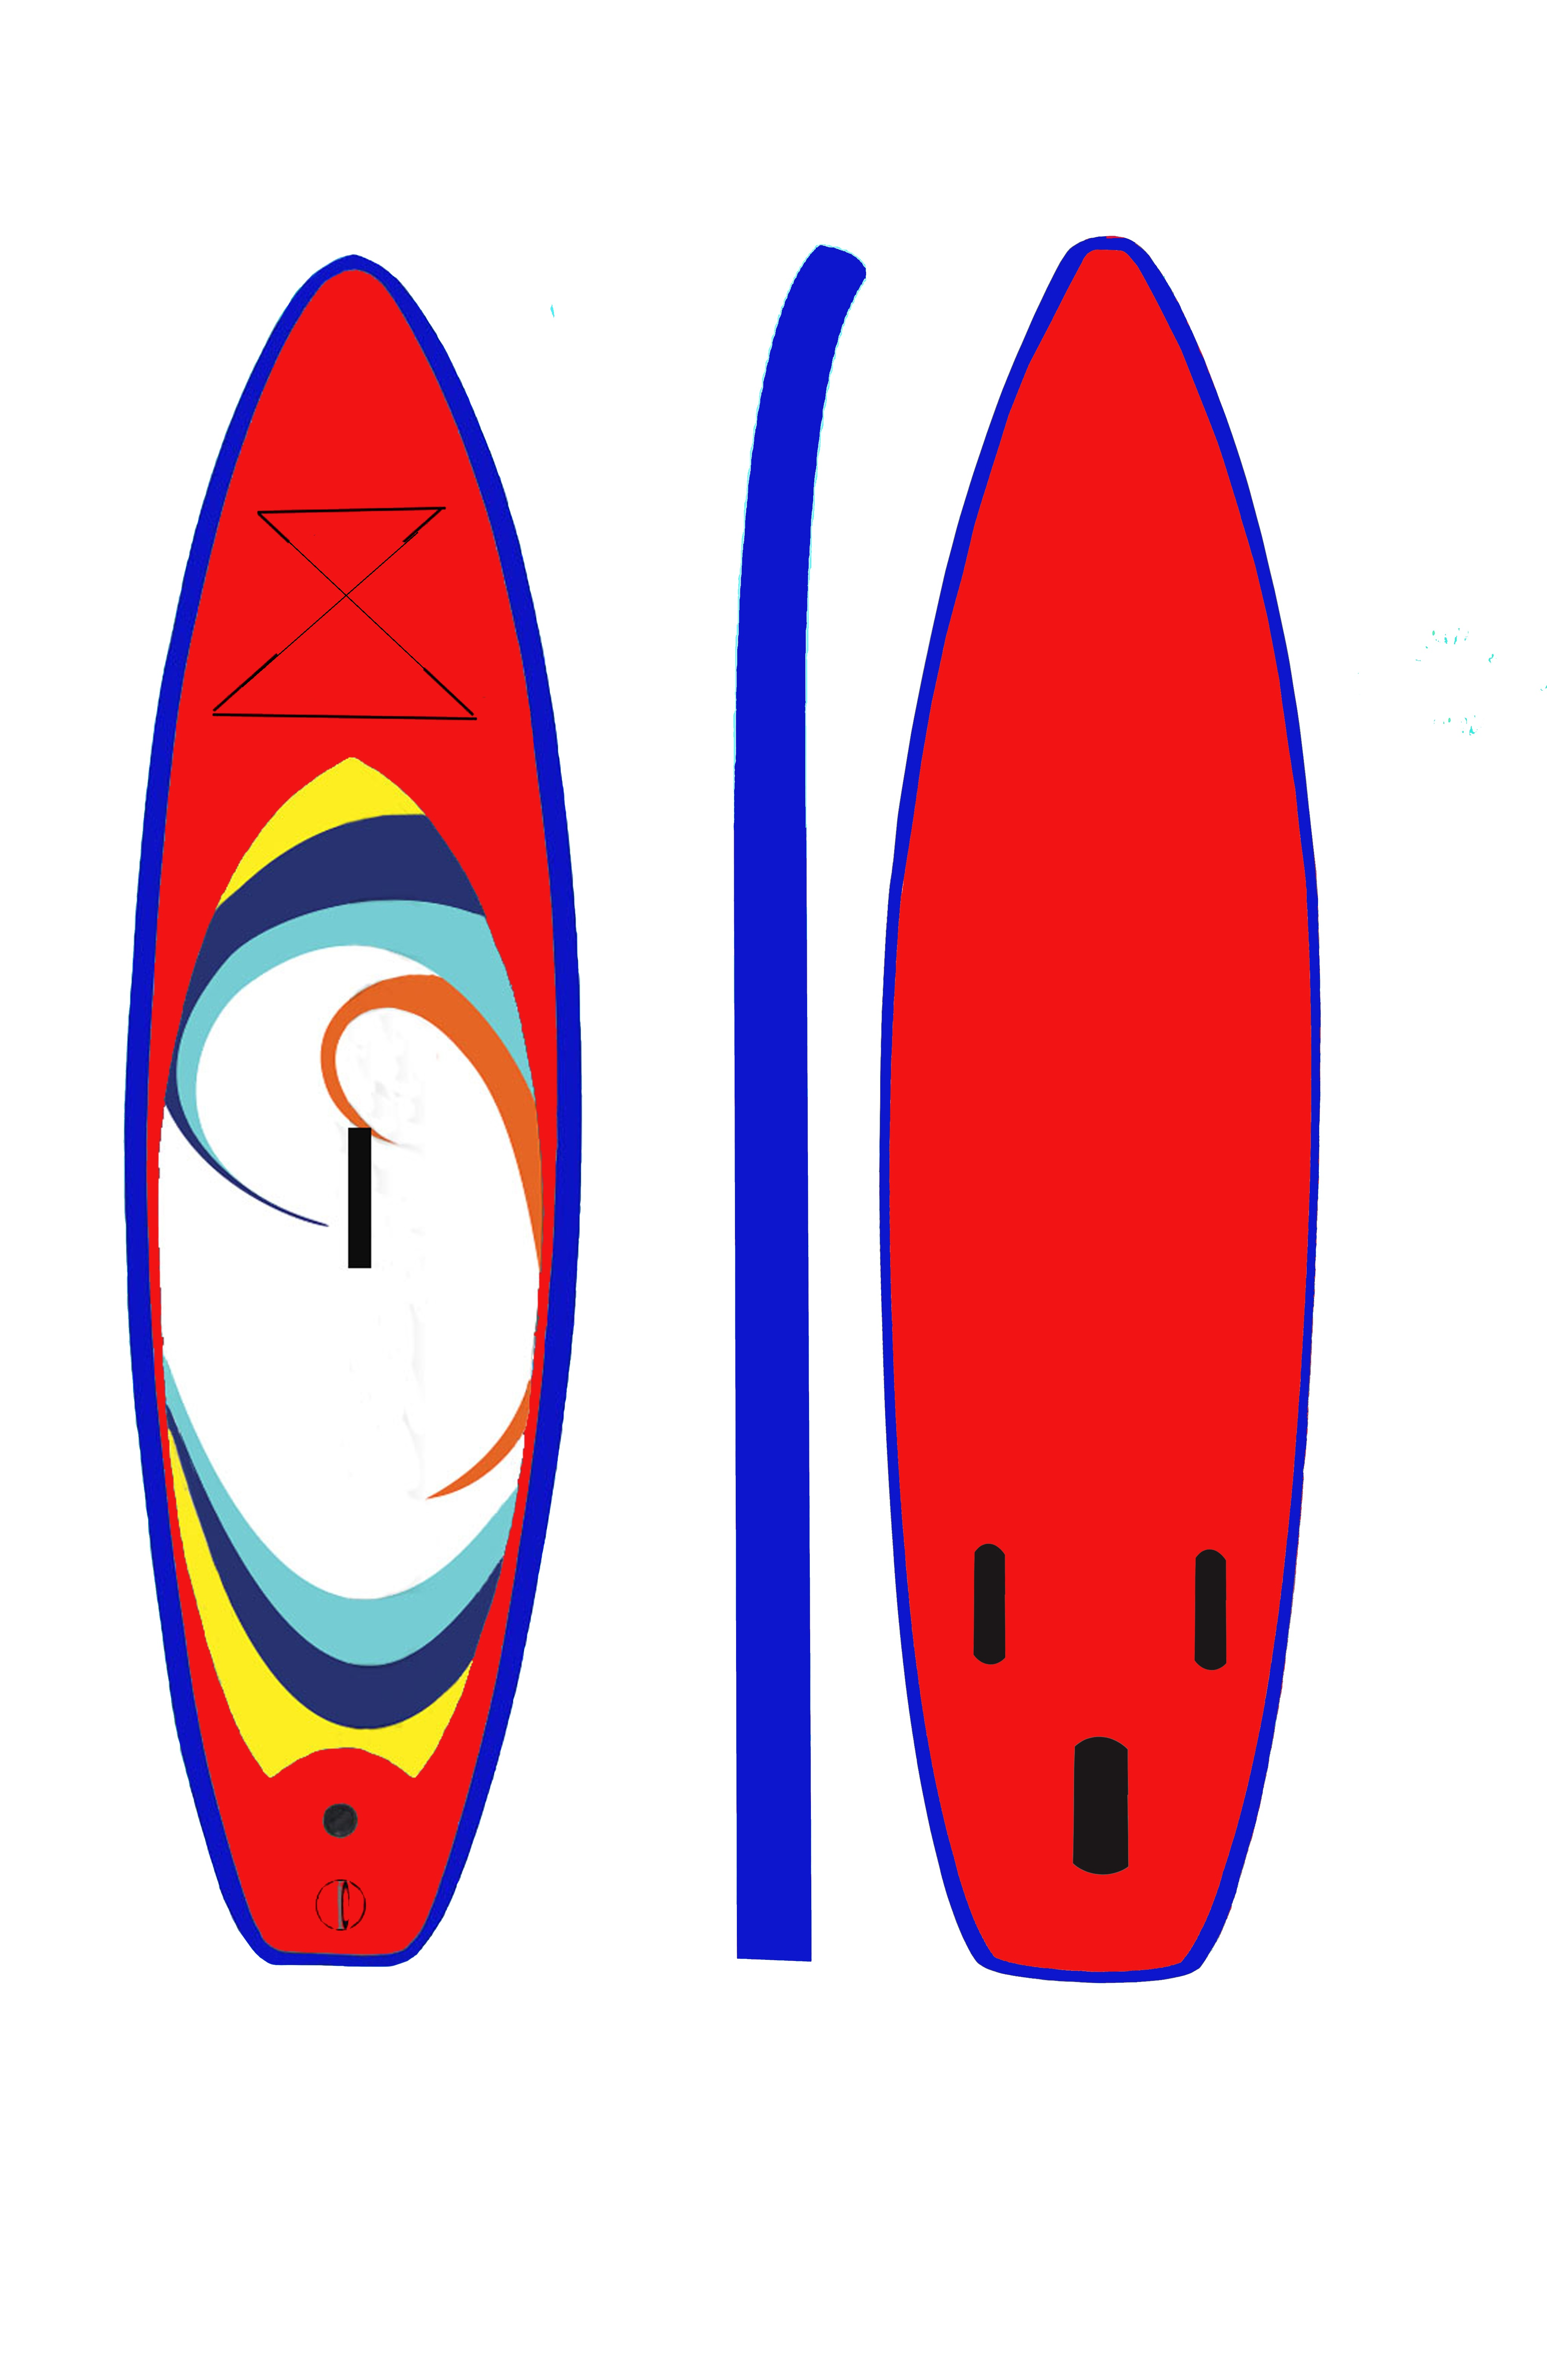 Blur clipart surfboard 2 Paddle BLUR AlfaSUP™ Boards